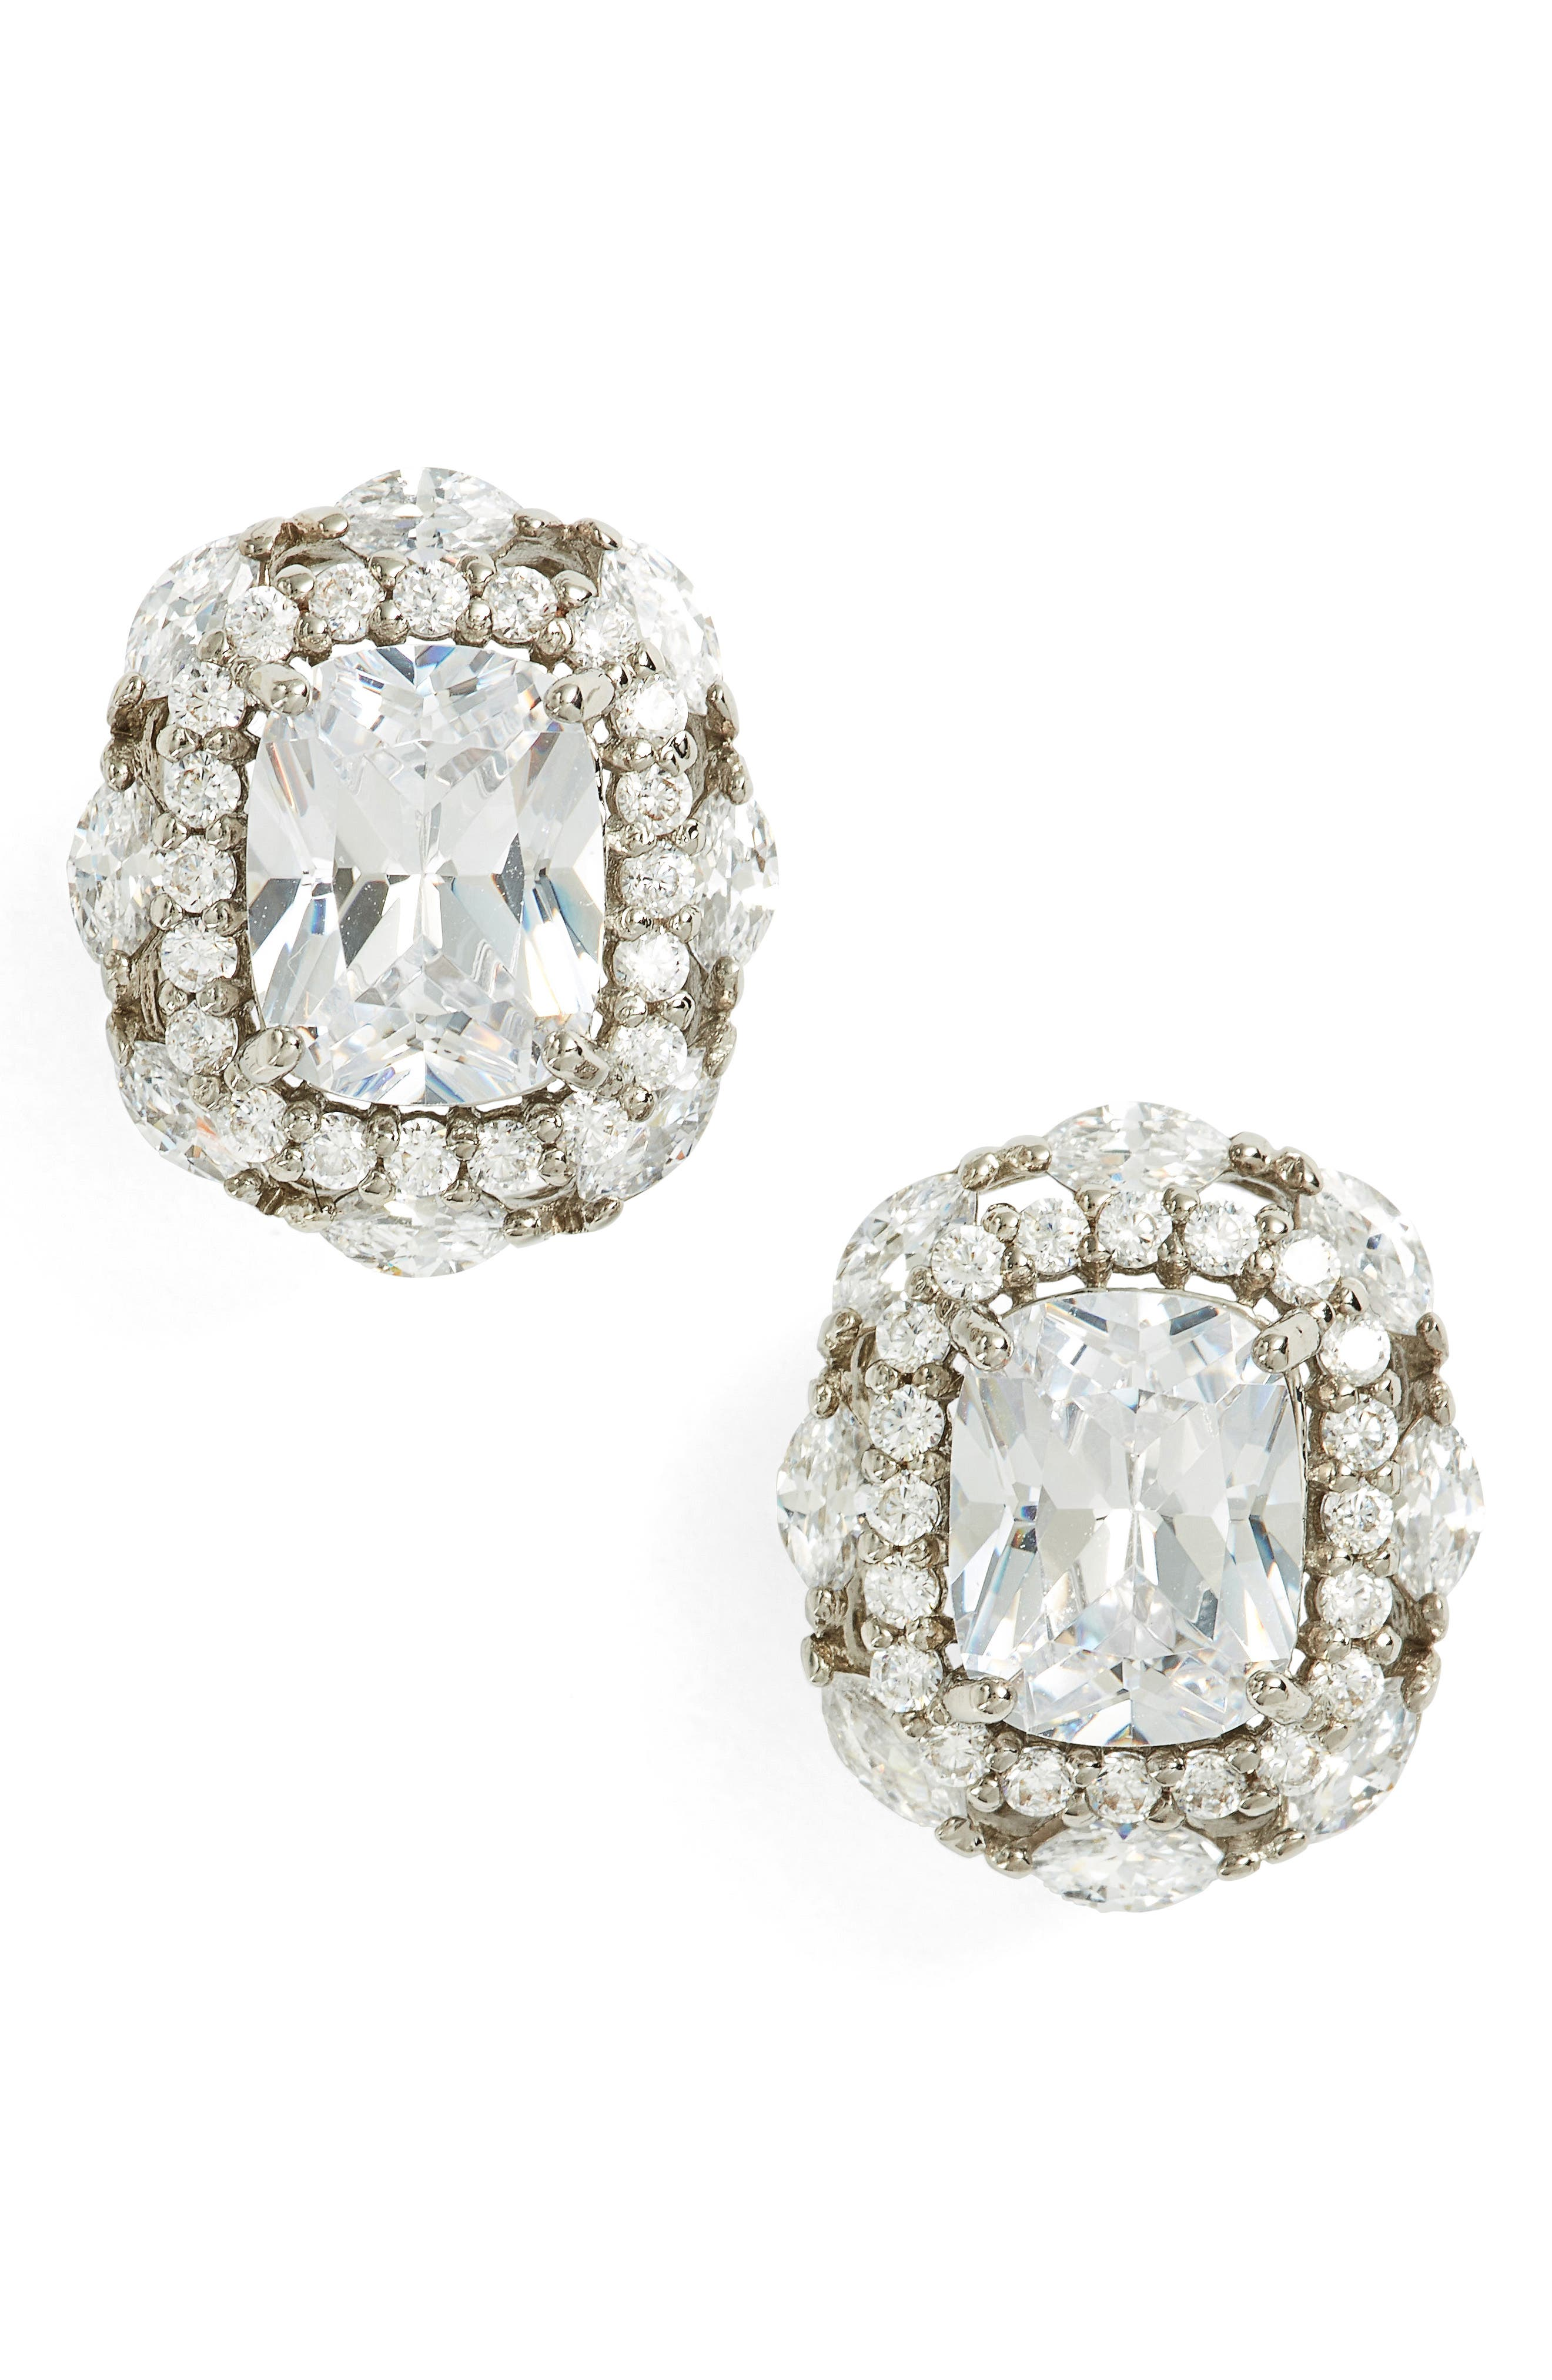 Estate Jewelry Cubic Zirconia Stud Earrings,                         Main,                         color, Silver